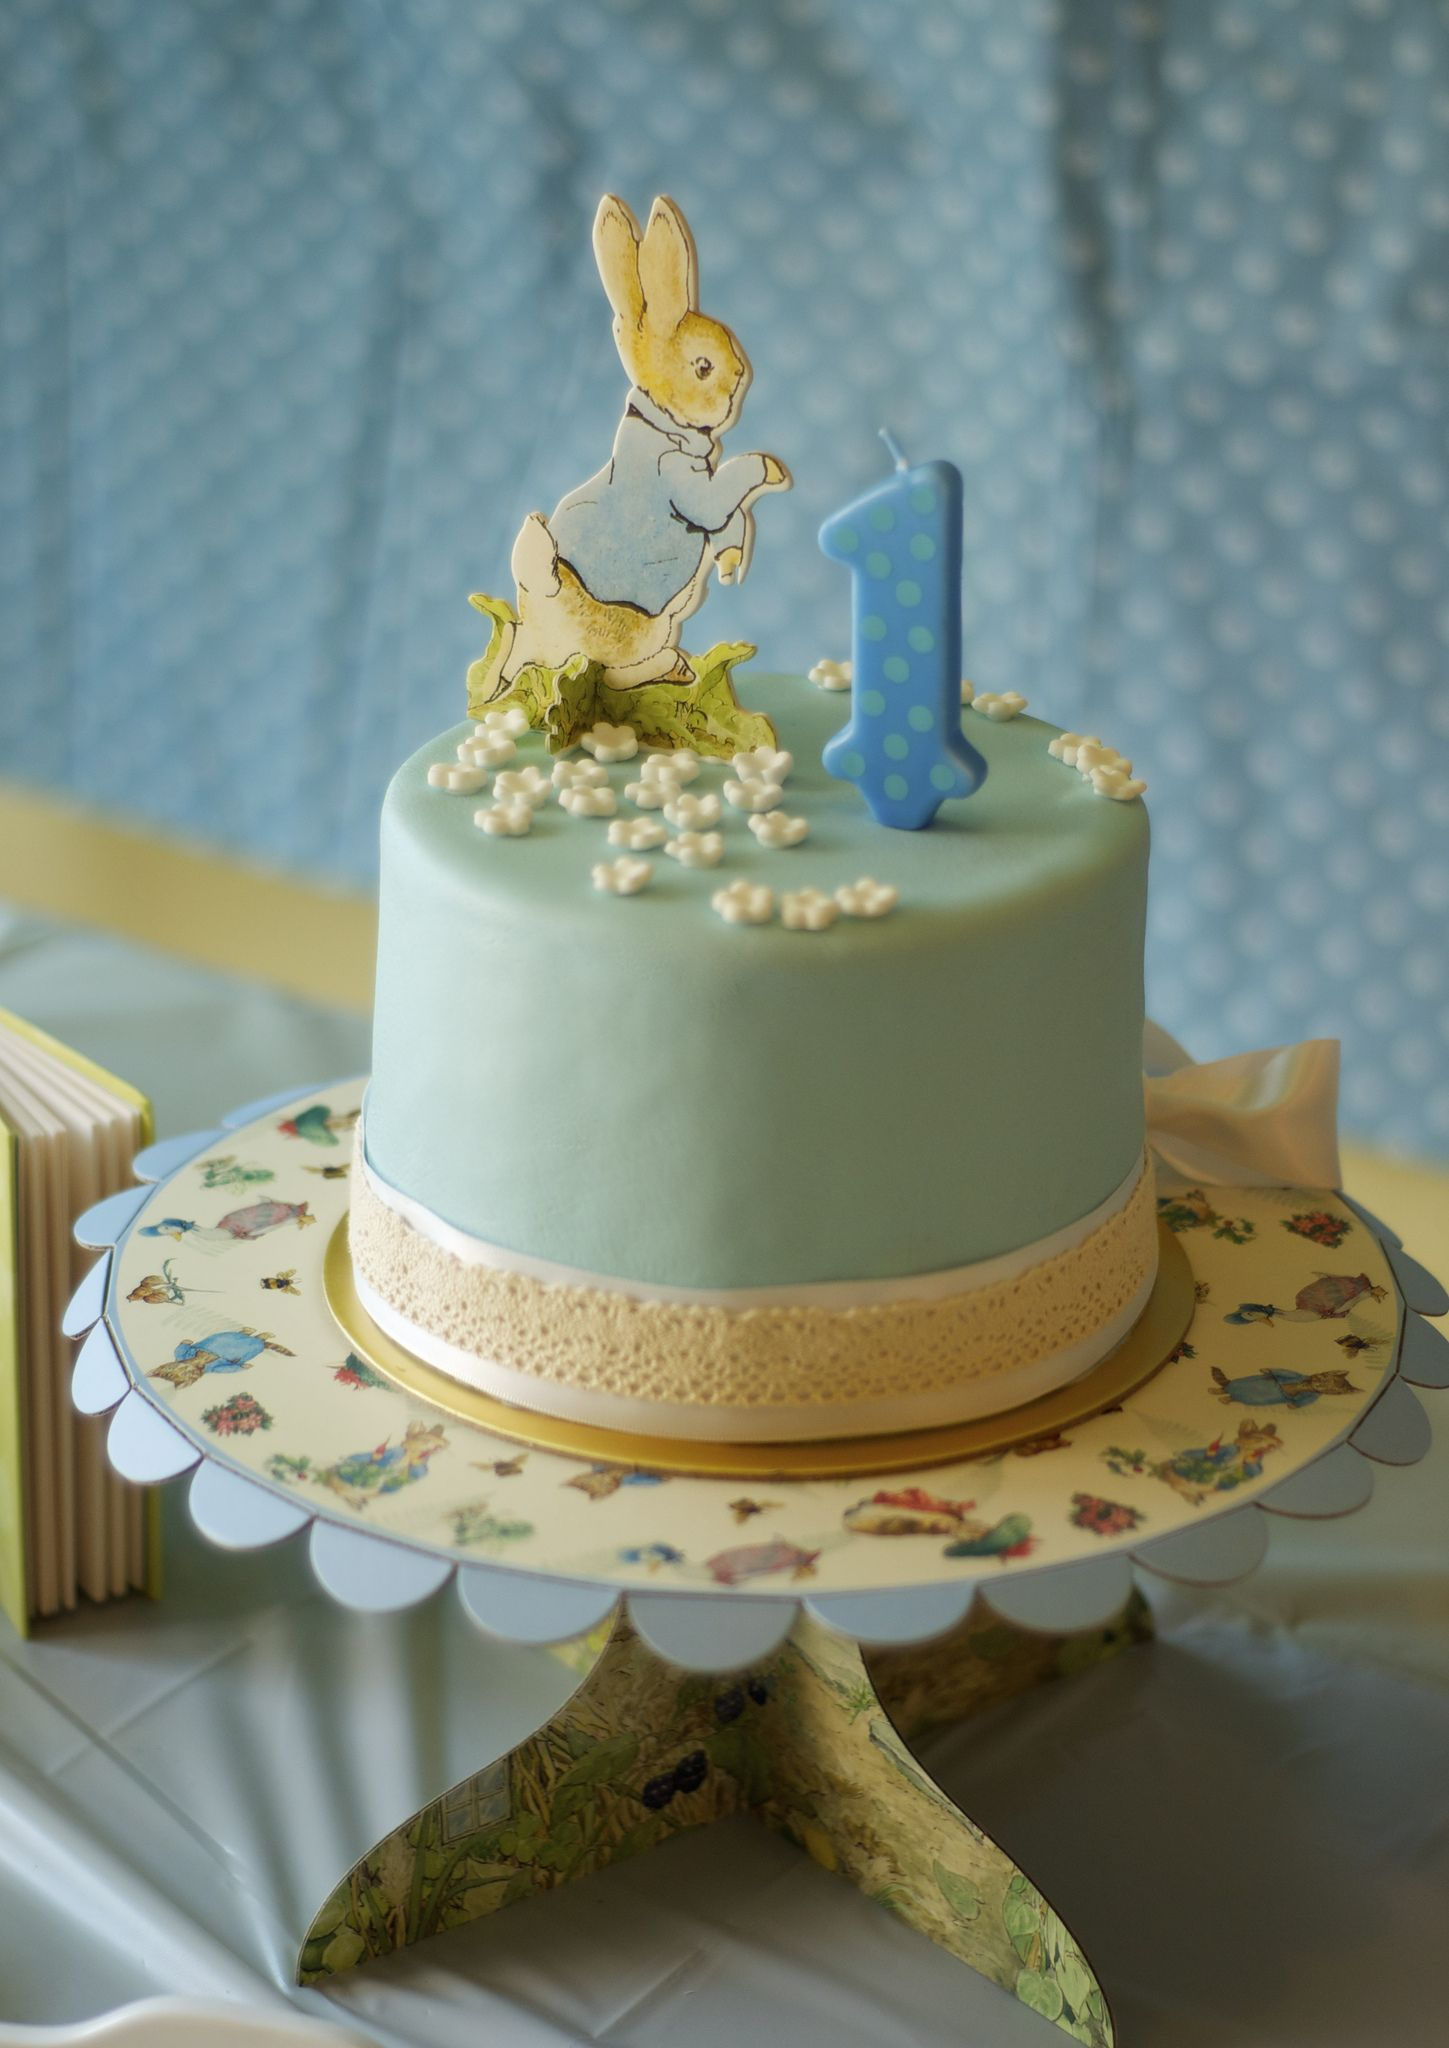 Peter Rabbit cake for a Peter Rabbit or Beatrix Potter party